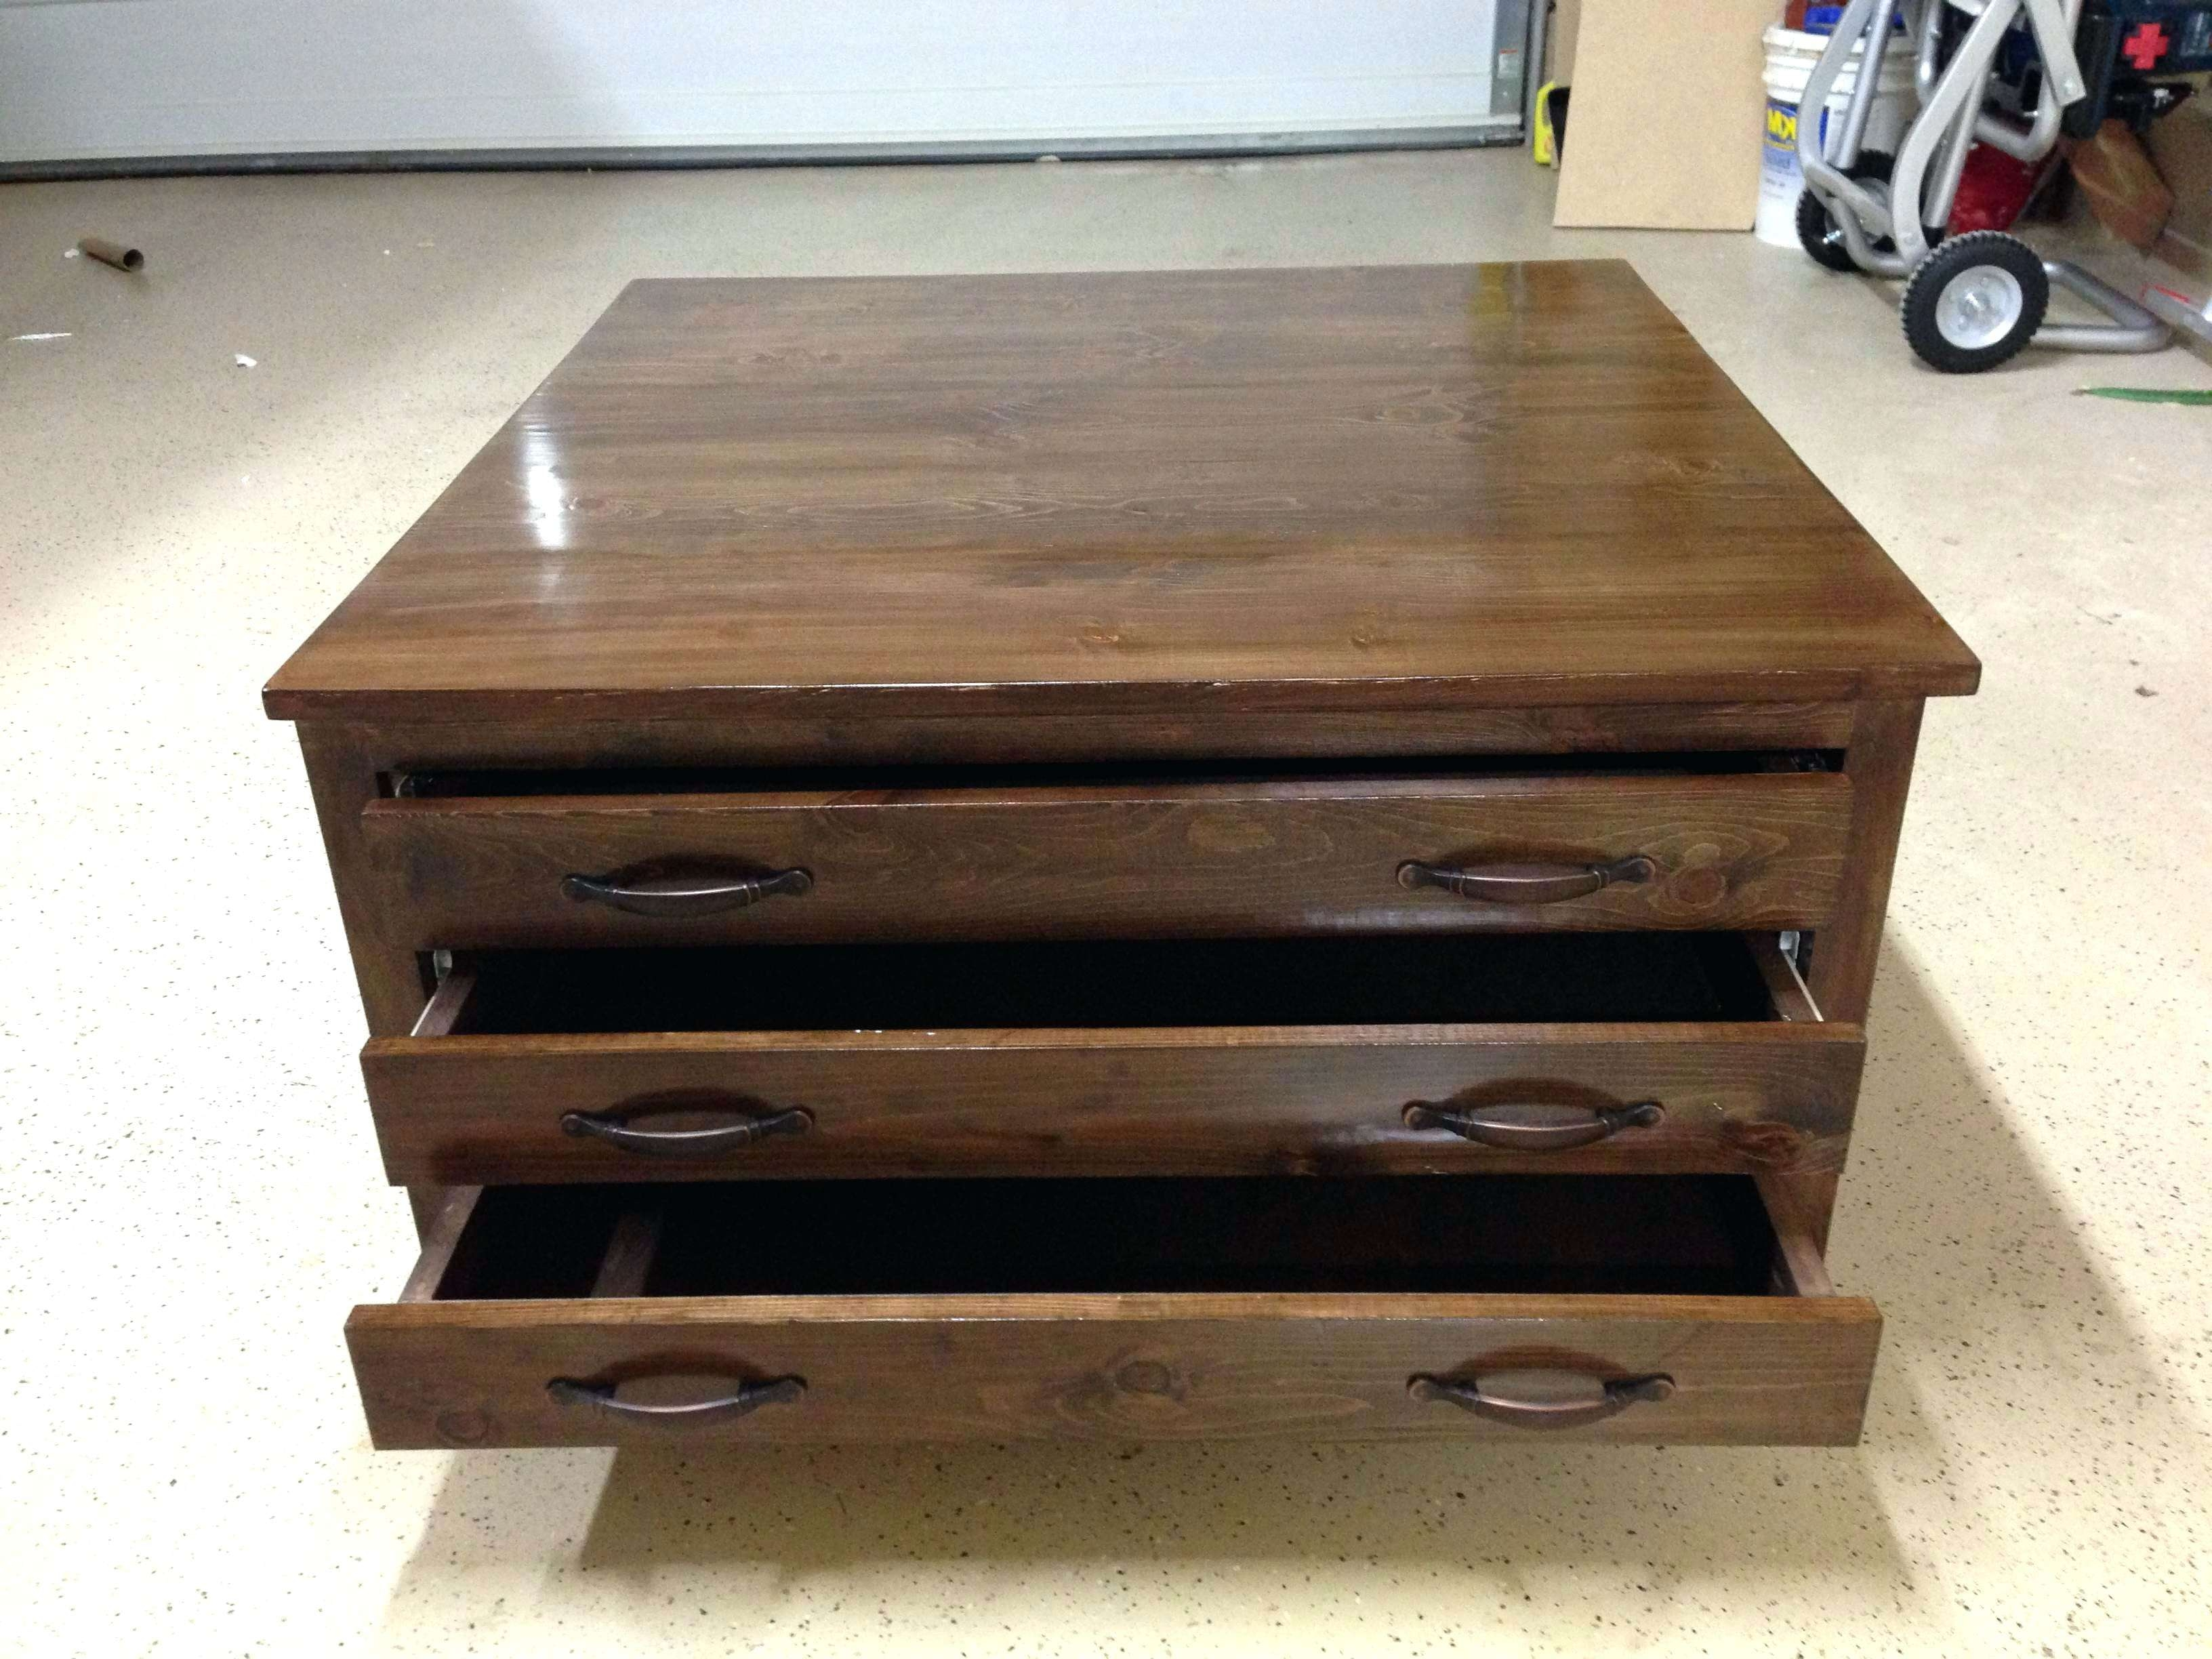 Most Popular Square Coffee Table With Storage Drawers For Coffee Tables : Rustic Coffee Table With Storage Tables And End (View 3 of 20)